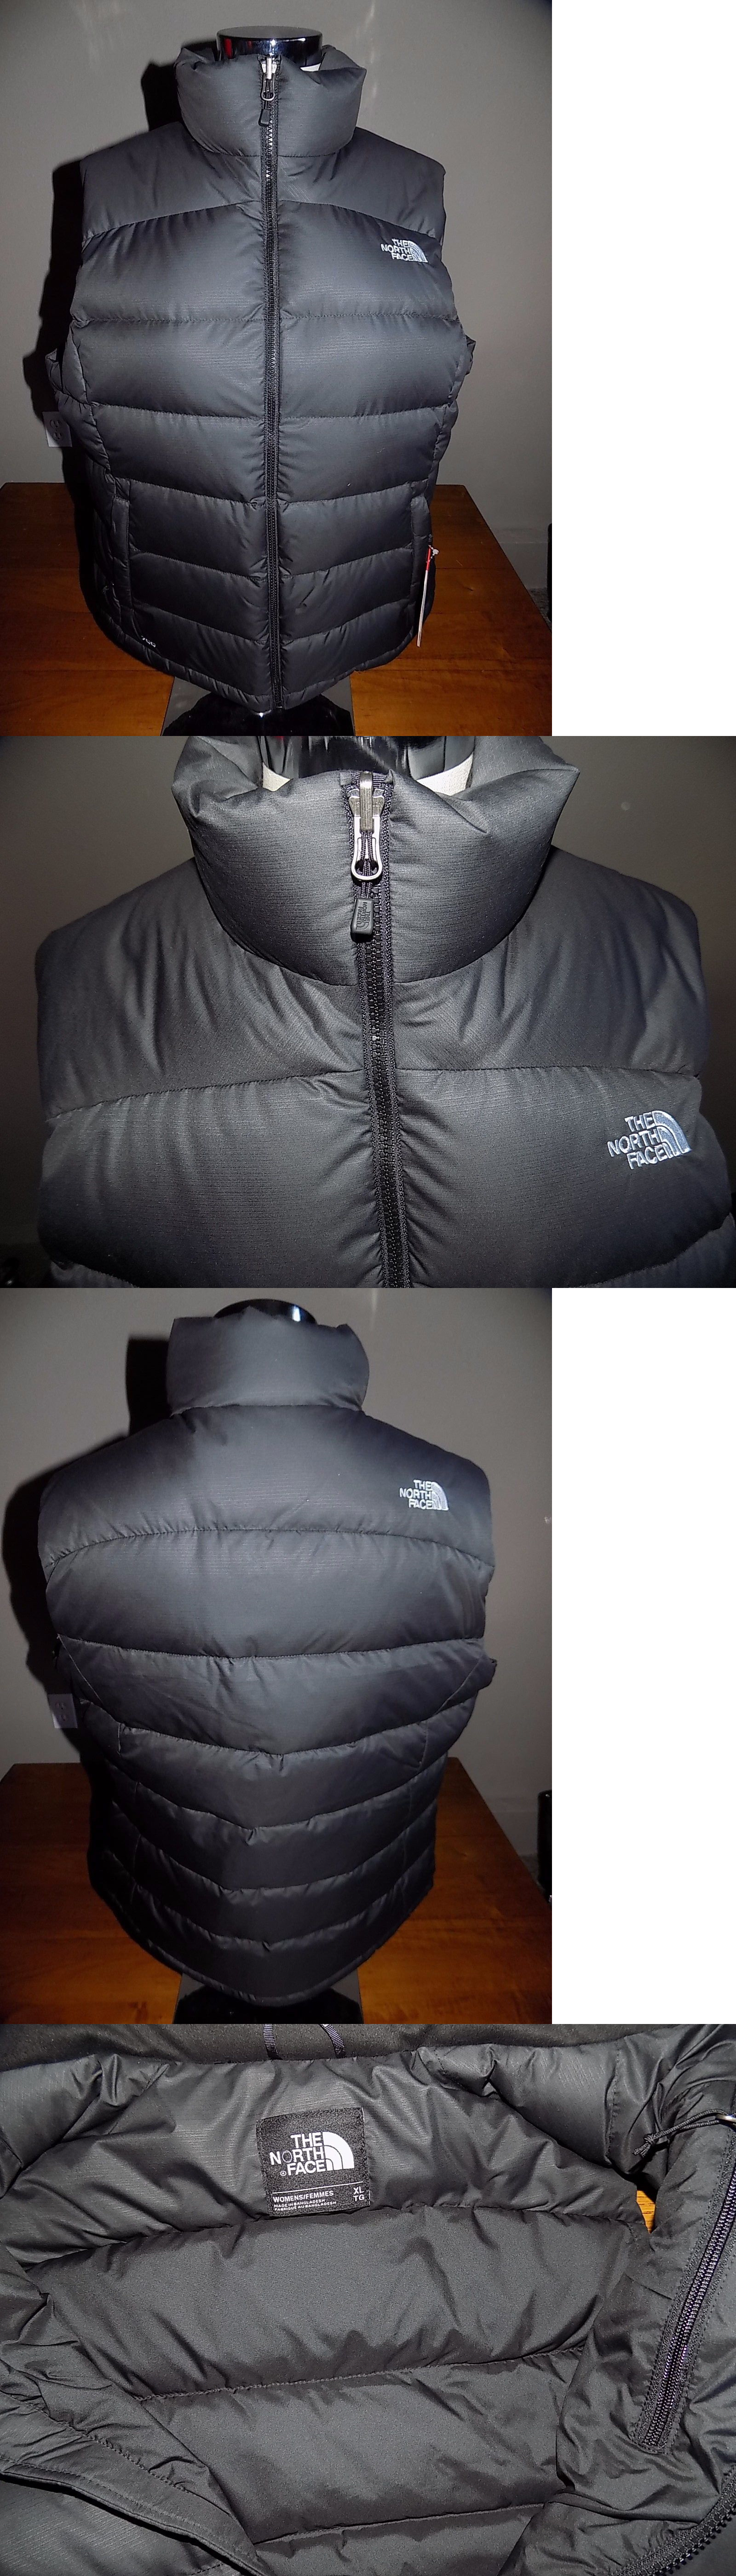 c8a37fcf1 Vests 15775: Nwt Women S The North Face Nuptse 2 Vest Tnf Black Size ...